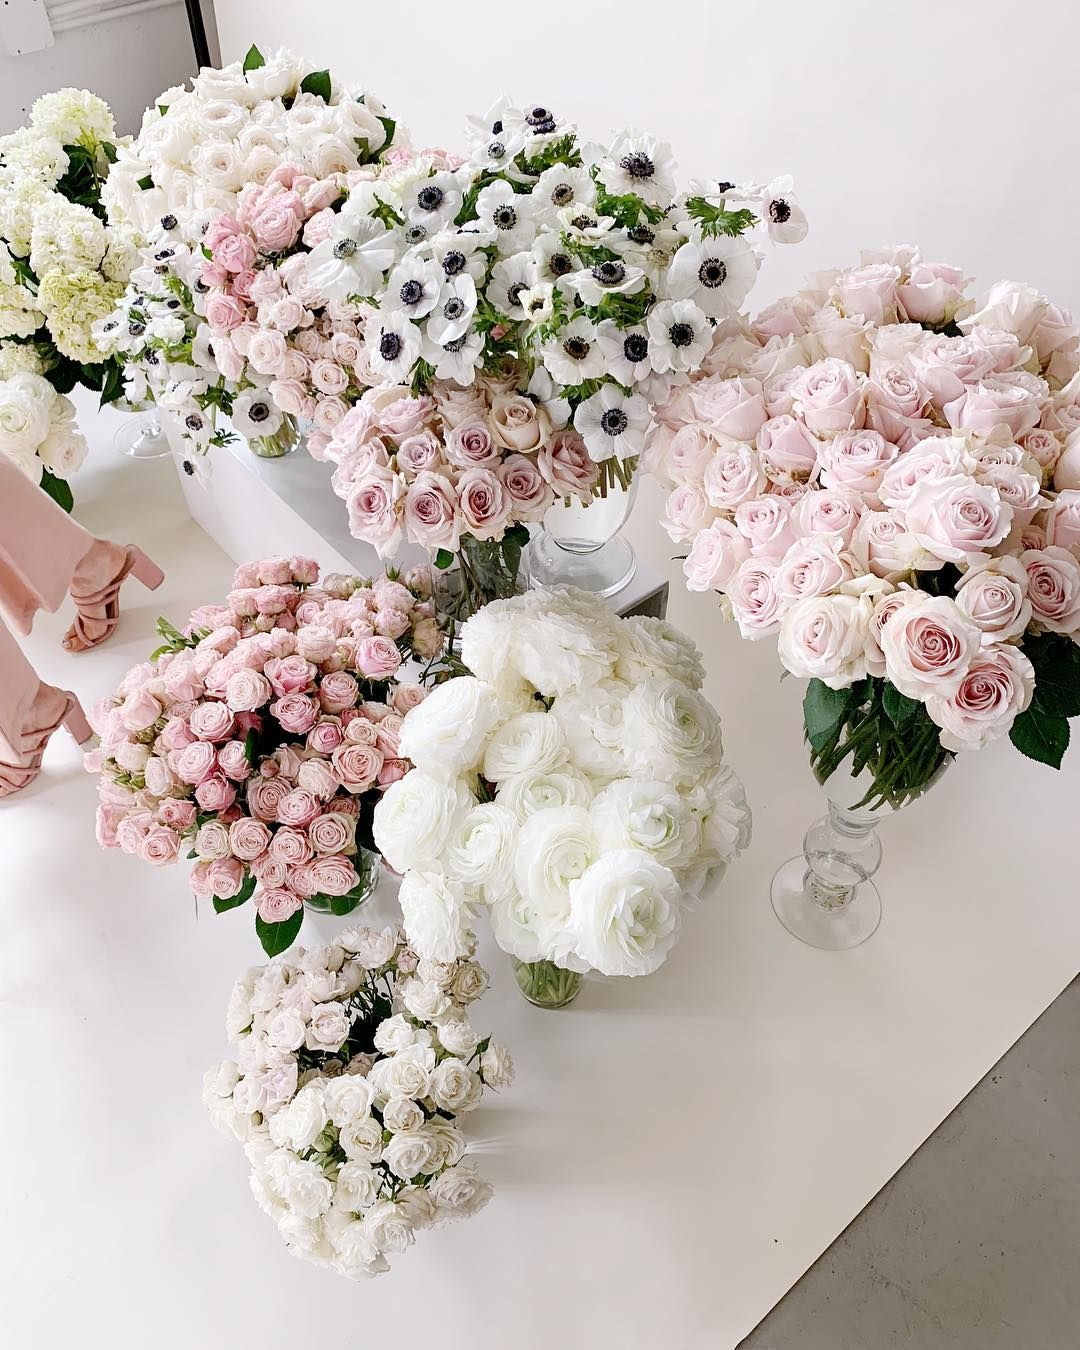 Office Look We Are Hard At Work Prepping For Our Biggest Spring Launch Yet Dresses Skirts Tops And Accessories Wil May Flowers Floral Art Rachel Parcell